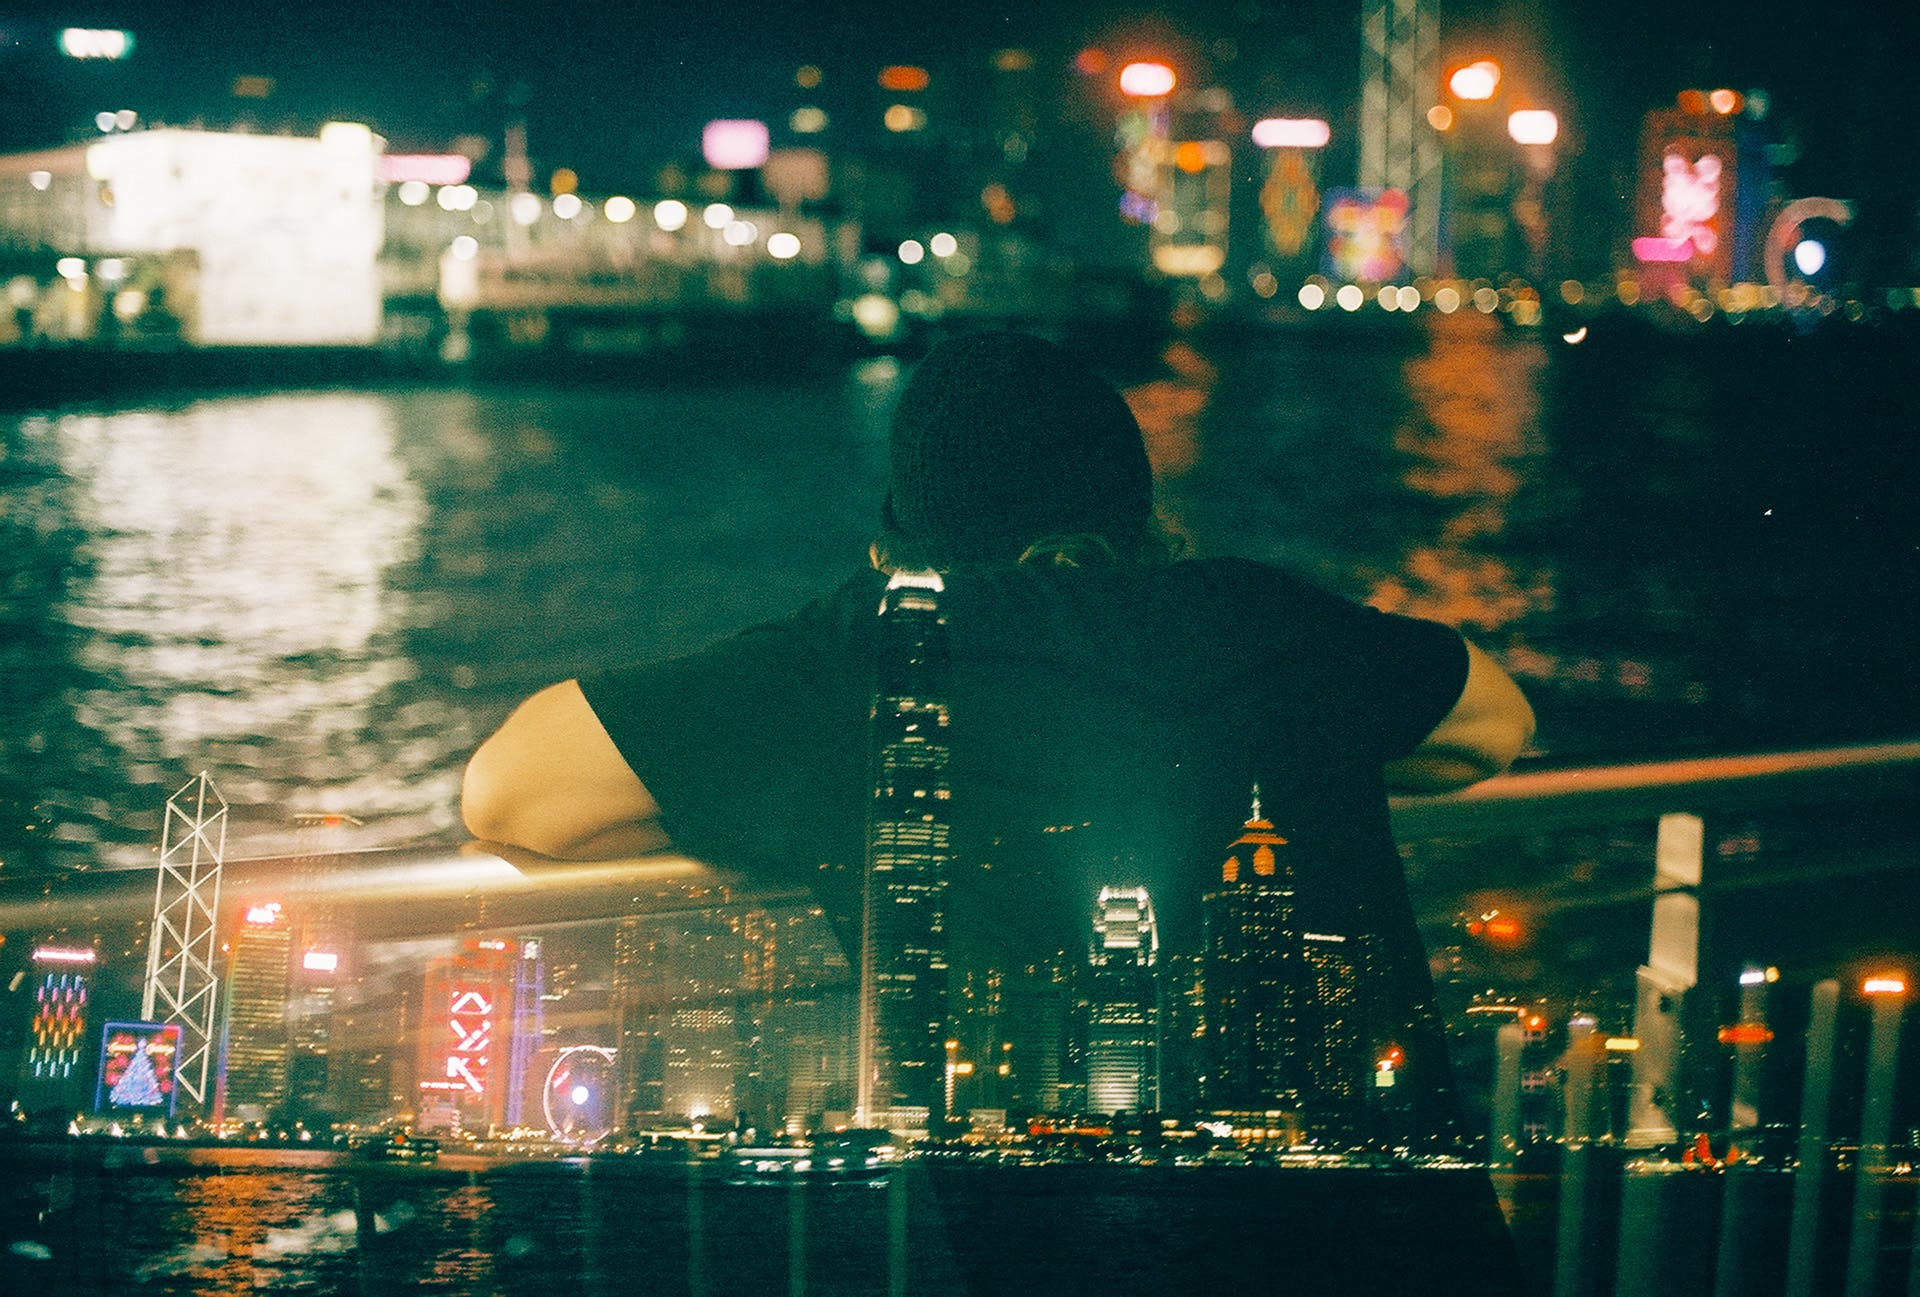 Louis Dazy Reimagines Hong Kong in Dreamy Double Exposures